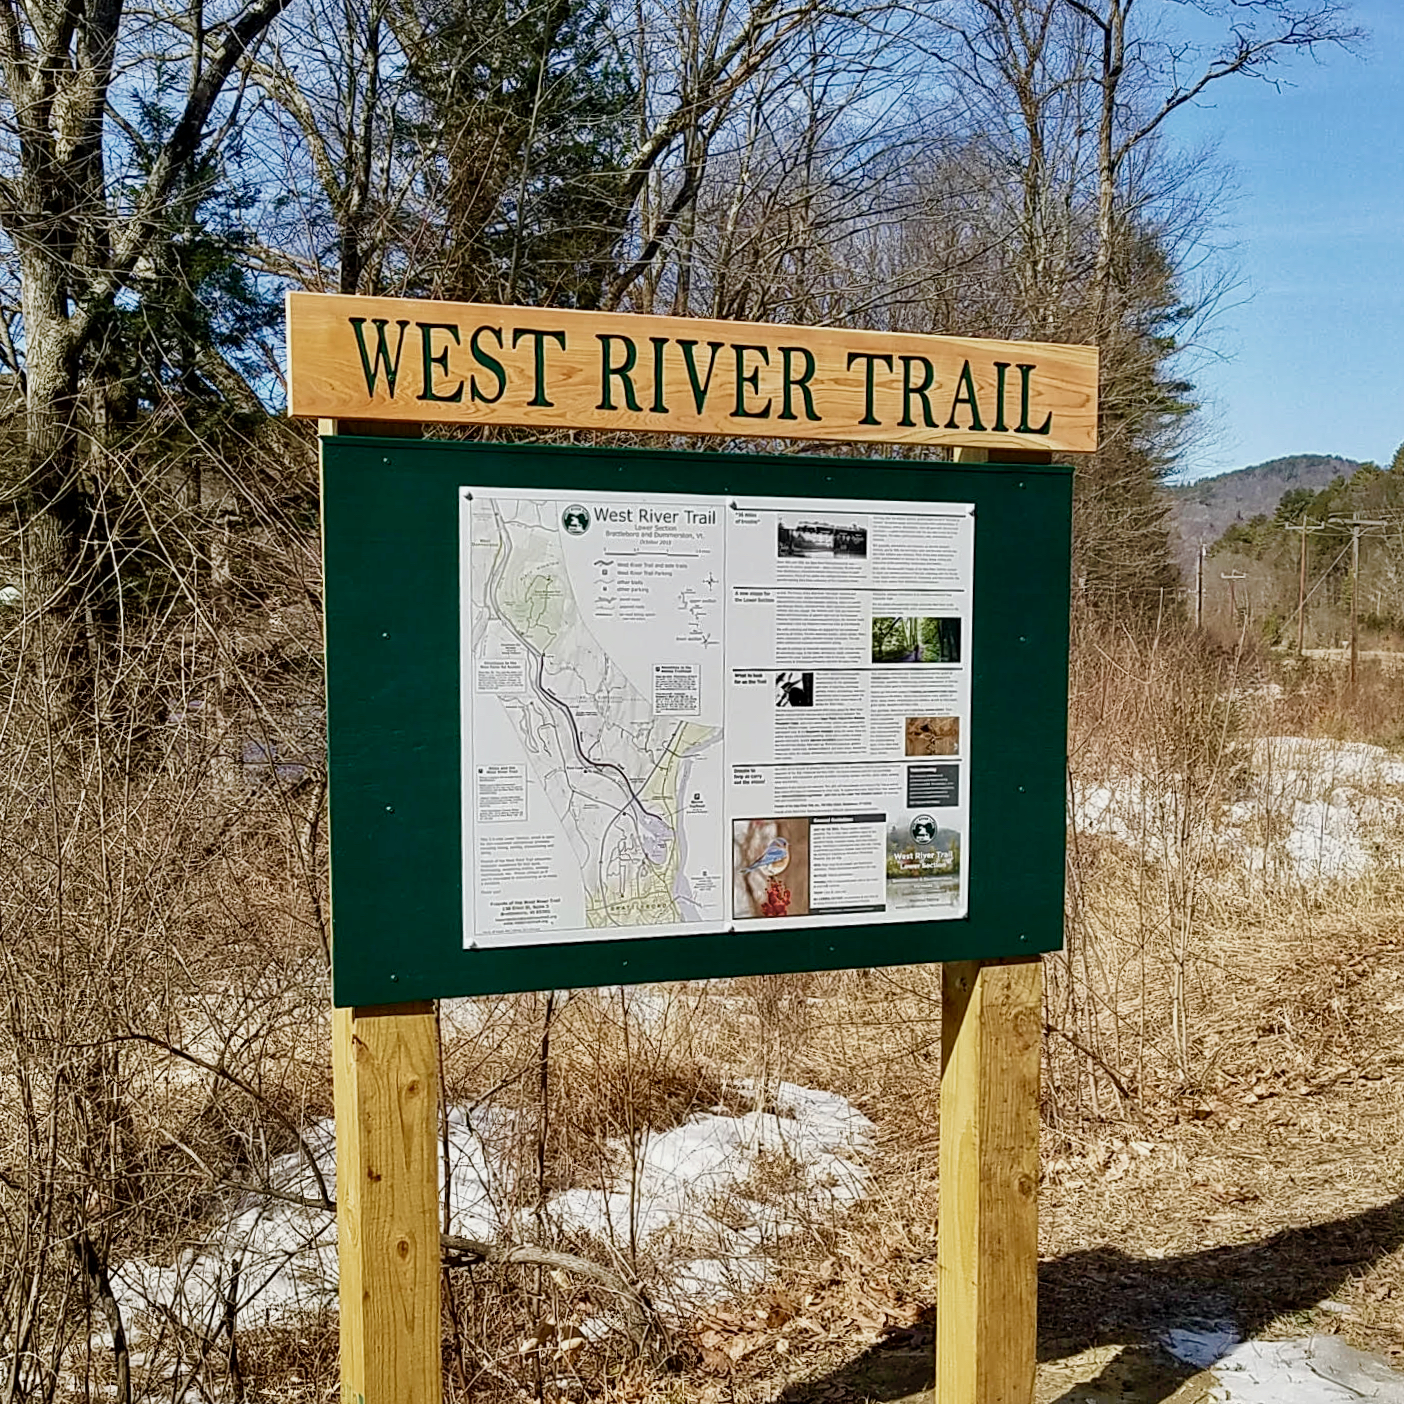 West River Trail Rice Farm Road Sign, Photo by Stephen Shriner, March 2020